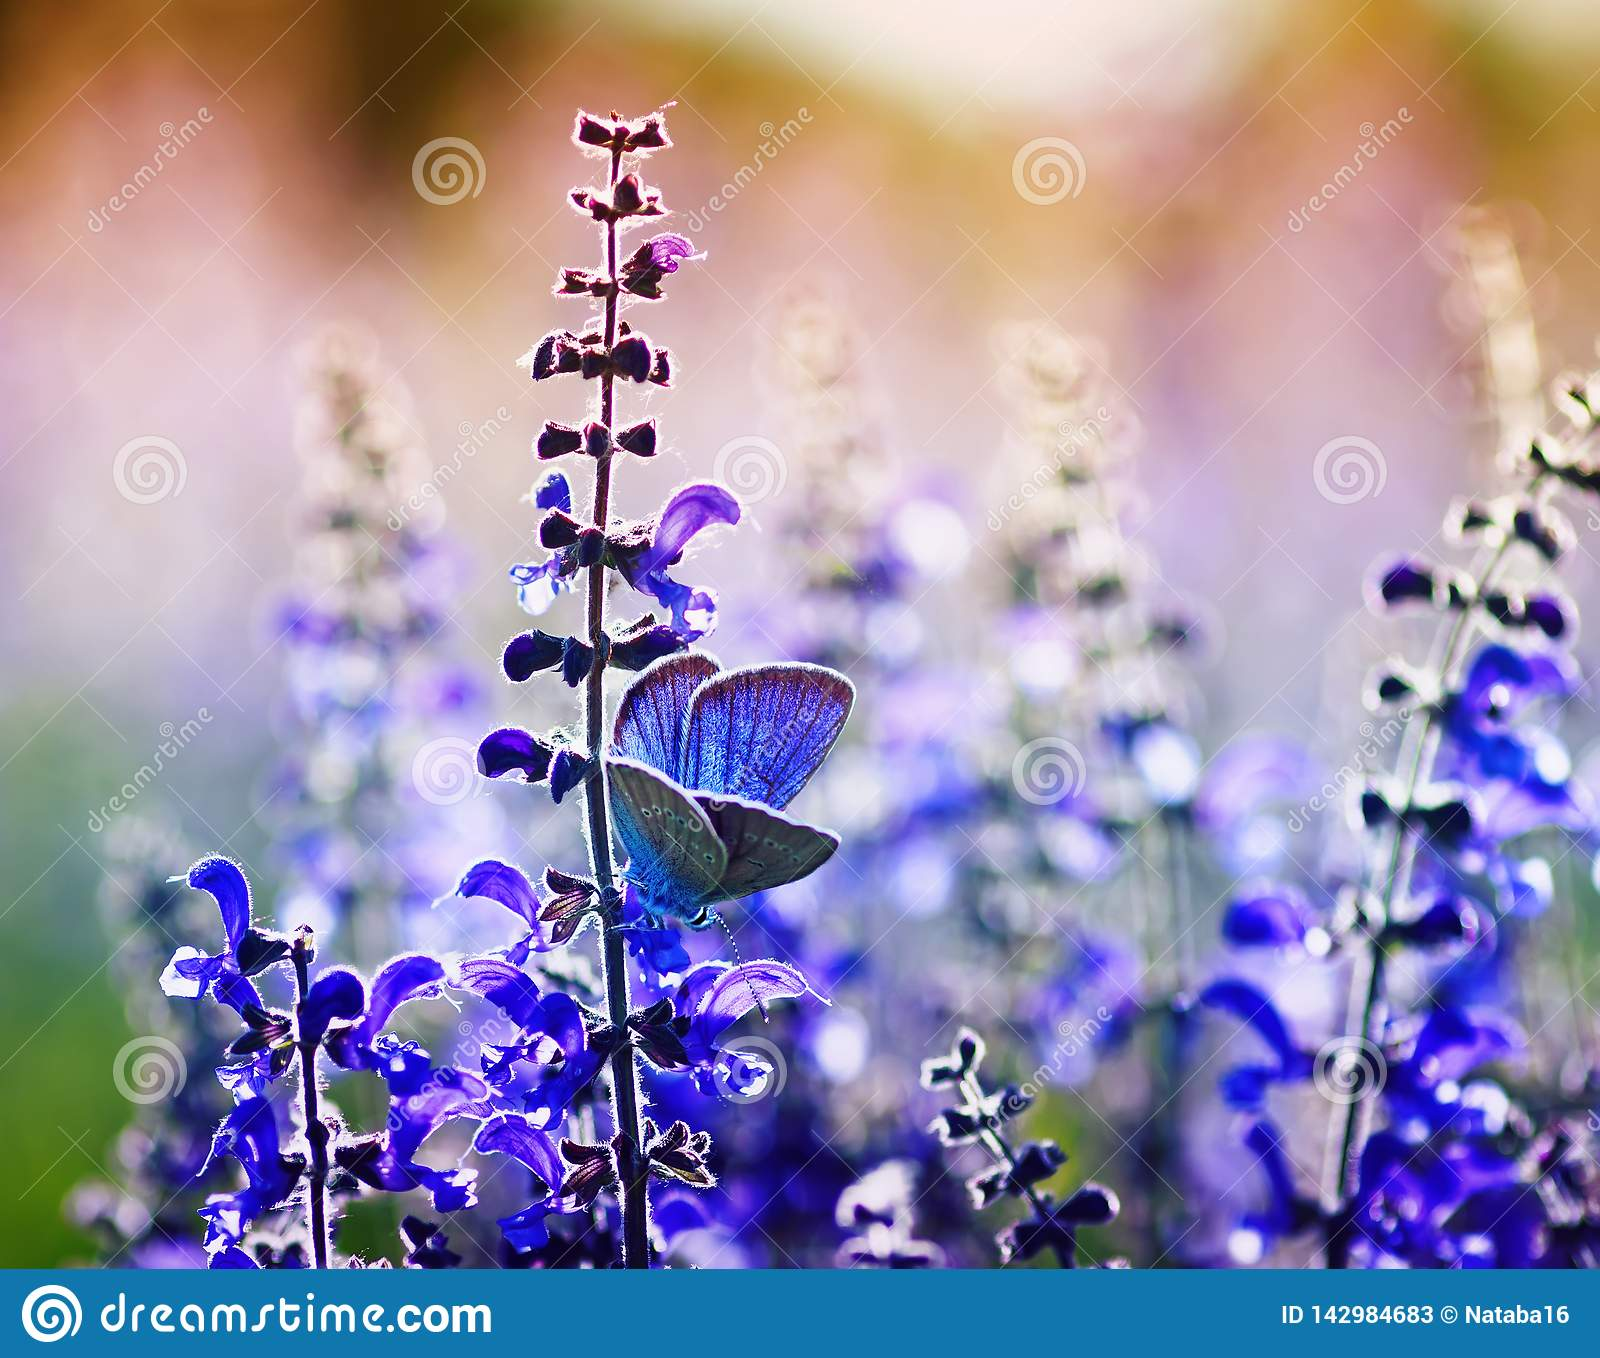 Small bright blue butterfly of a pigeon sits on purple flowers on a Sunny summer day in a rural meadow